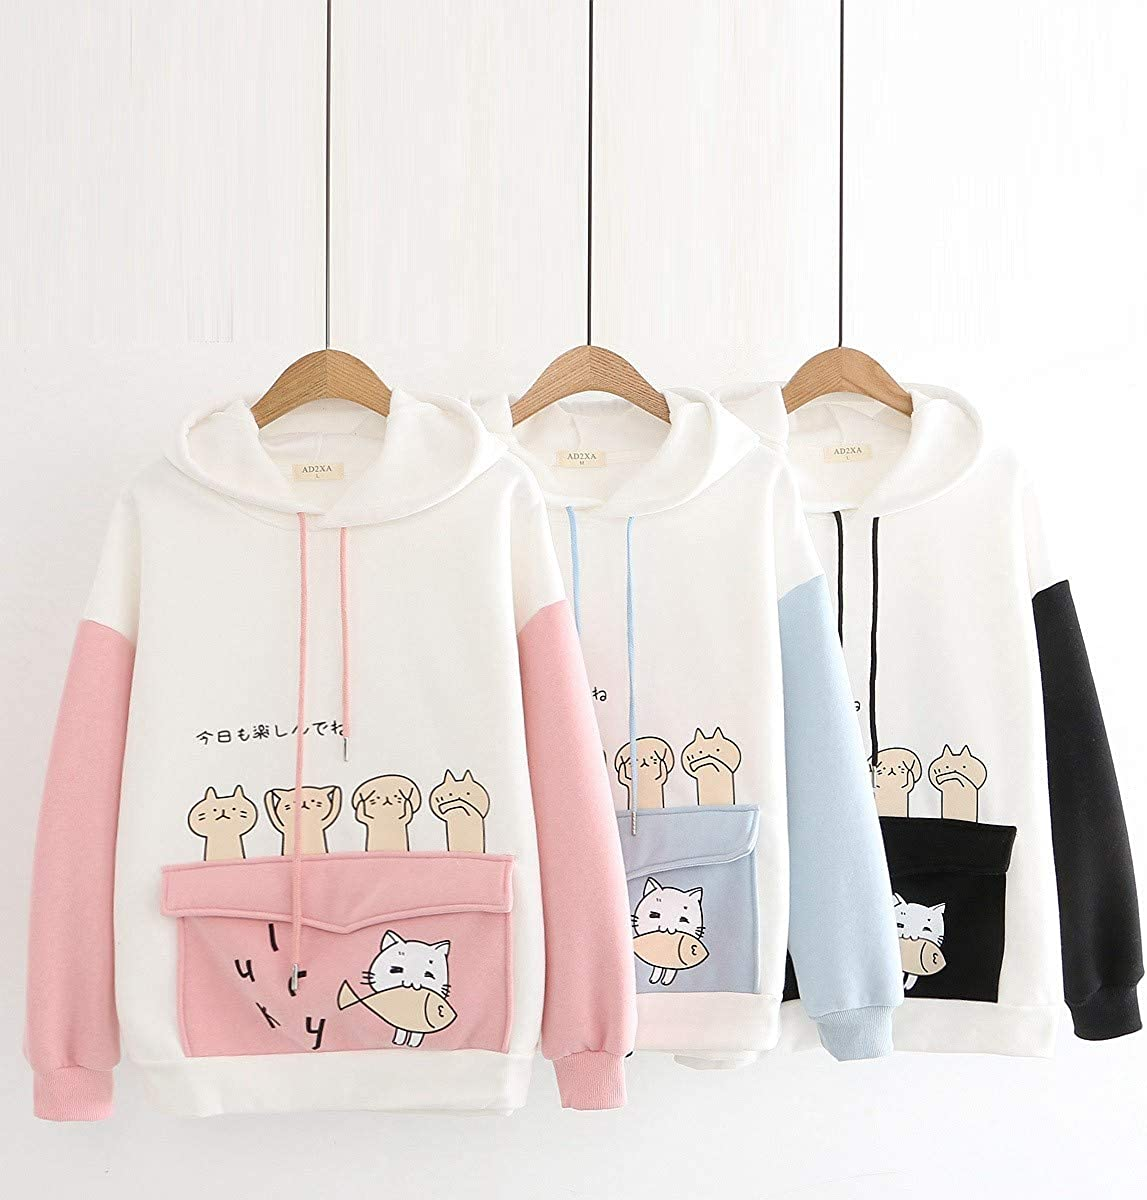 MASZONE Hoodies for Women Pullover Design Splicing Drawstring Sweatshirt Long Sleeve Hoodie Blouses Tops with Pockets